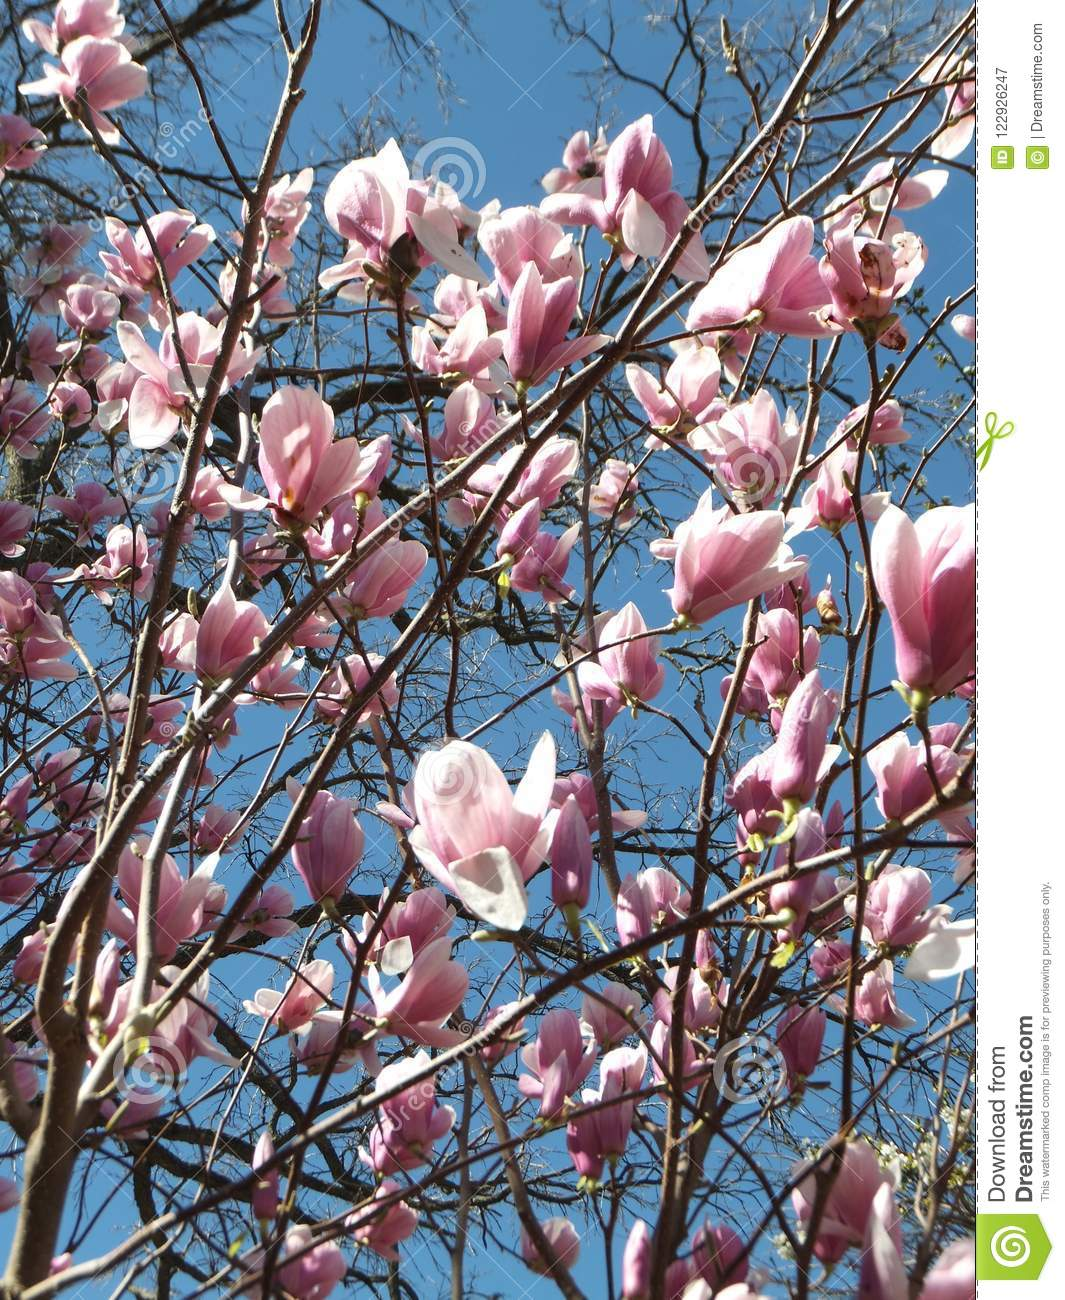 Section of a blossoming magnolia tree with sunlit light pink flowers section of a blossoming magnolia tree with light pink flowers sunlit on blue sky background mightylinksfo